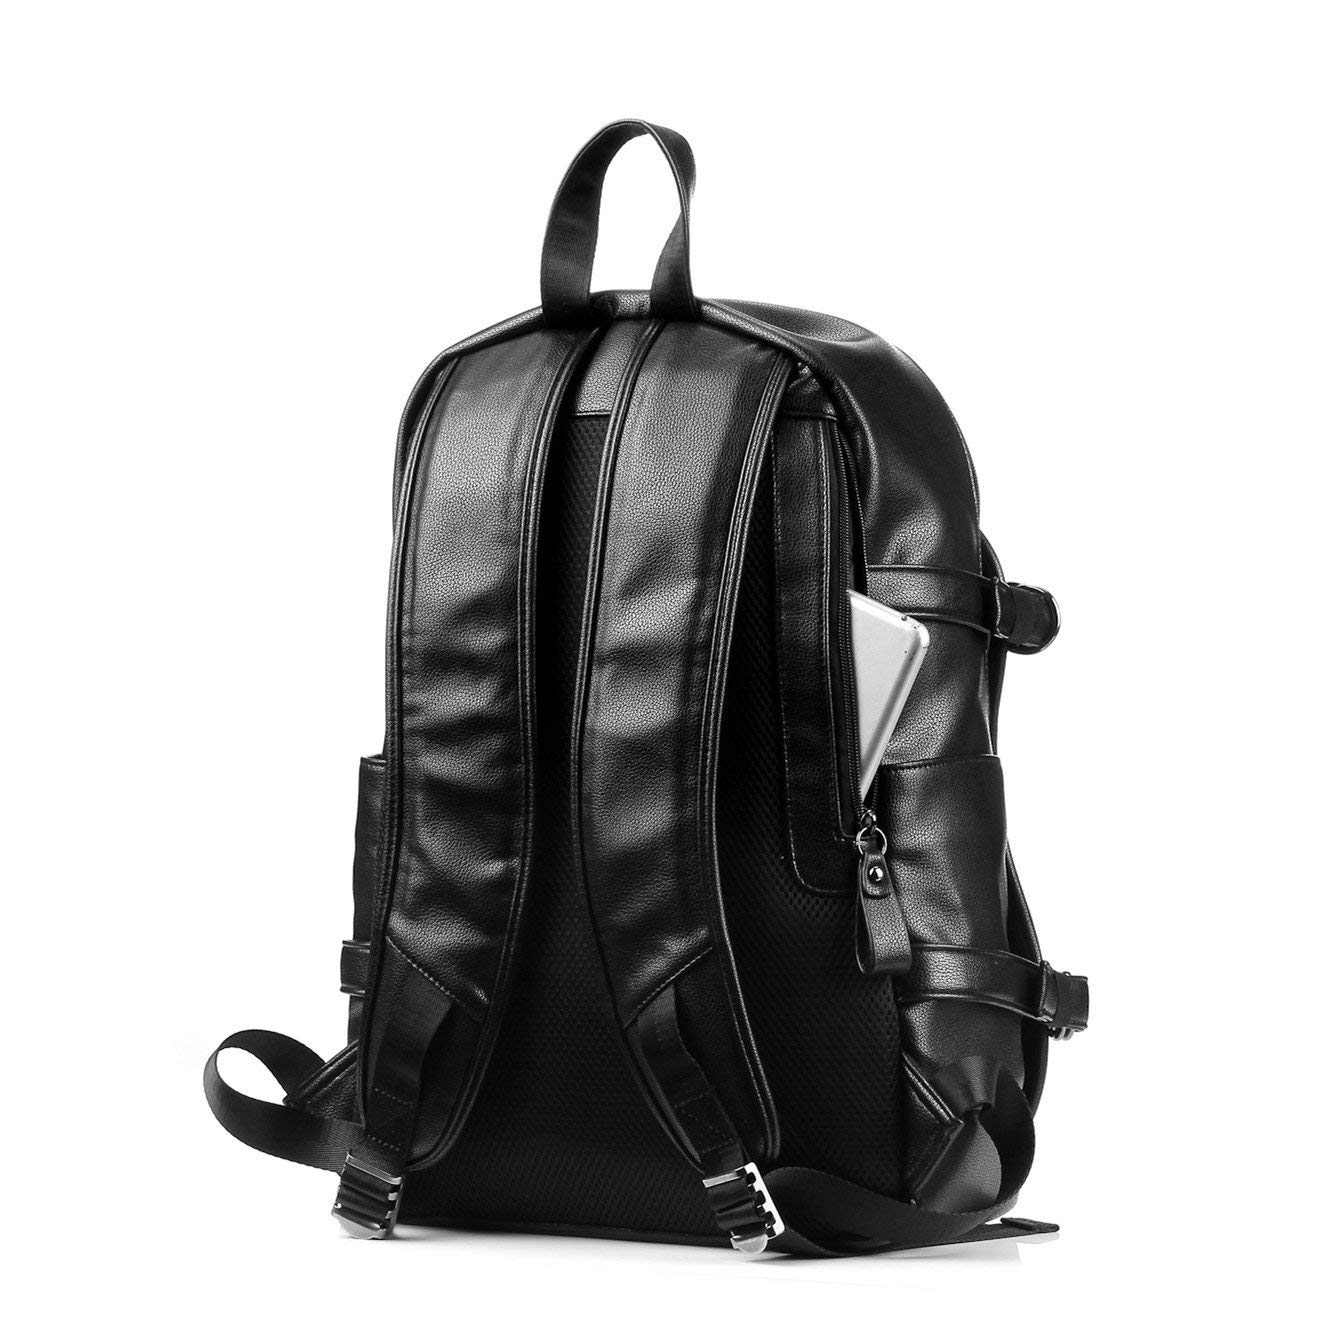 Travel Commuting Commuting Business Trip Popularity high School Student Innovation Design Backpack LIUFENGLONG Backpack Mens Leather Waterproof Large Capacity Black LIUFENGLONG